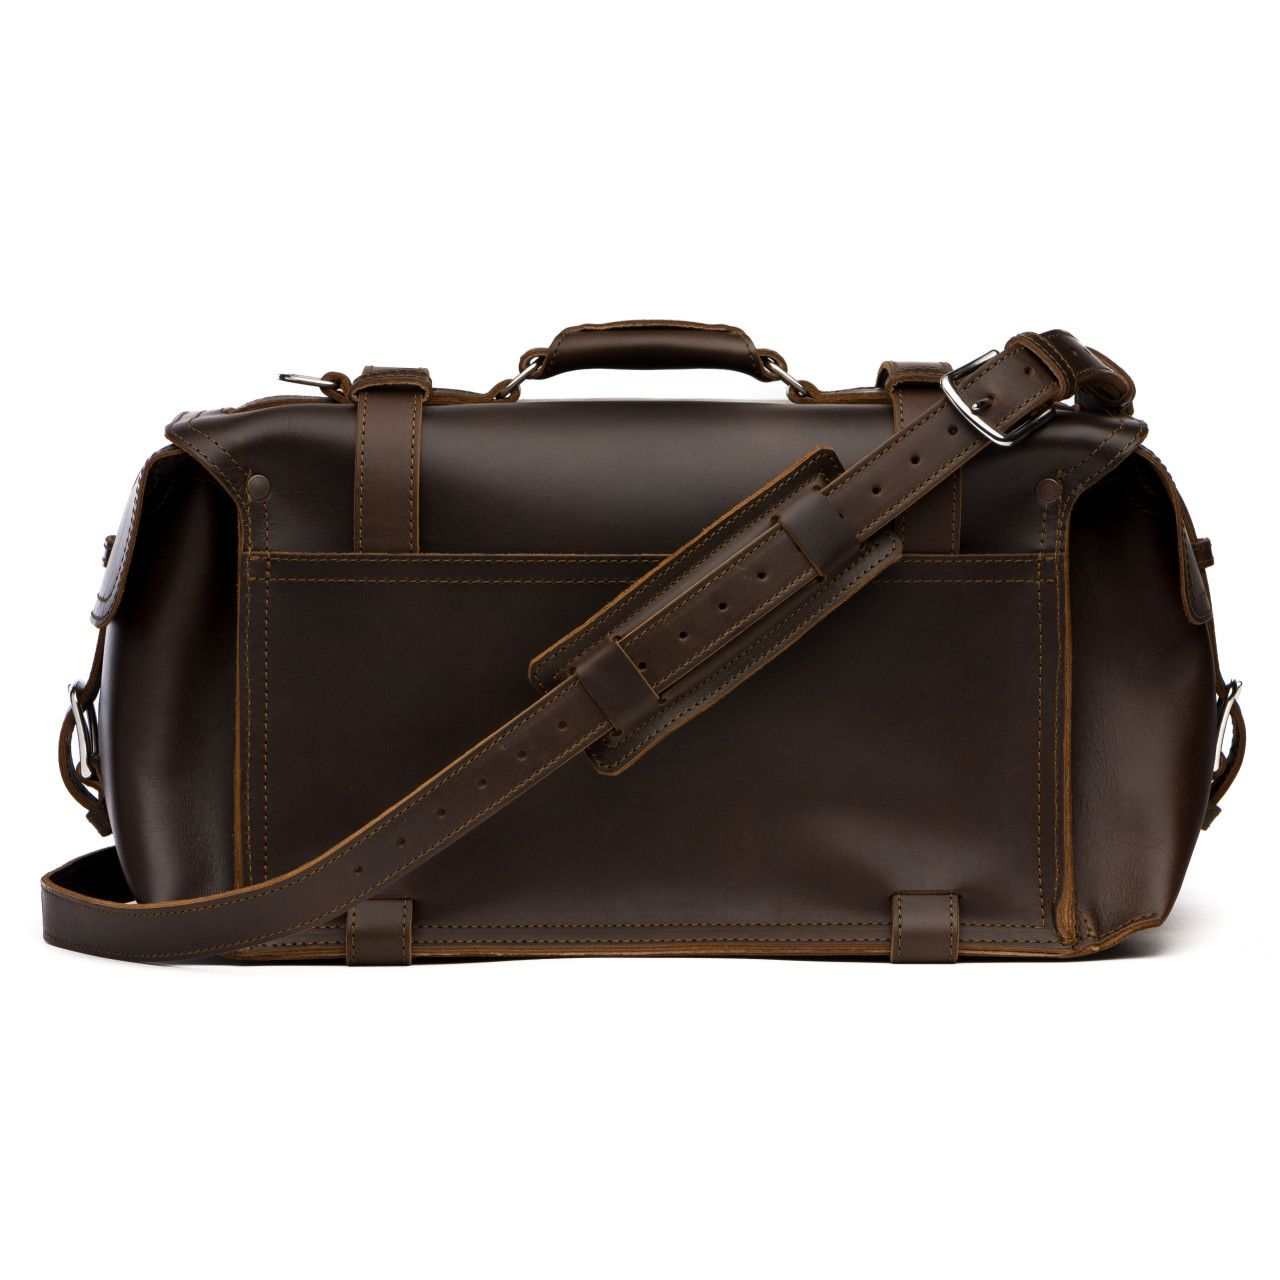 side pocket leather duffel bag large in dark coffee brown leather